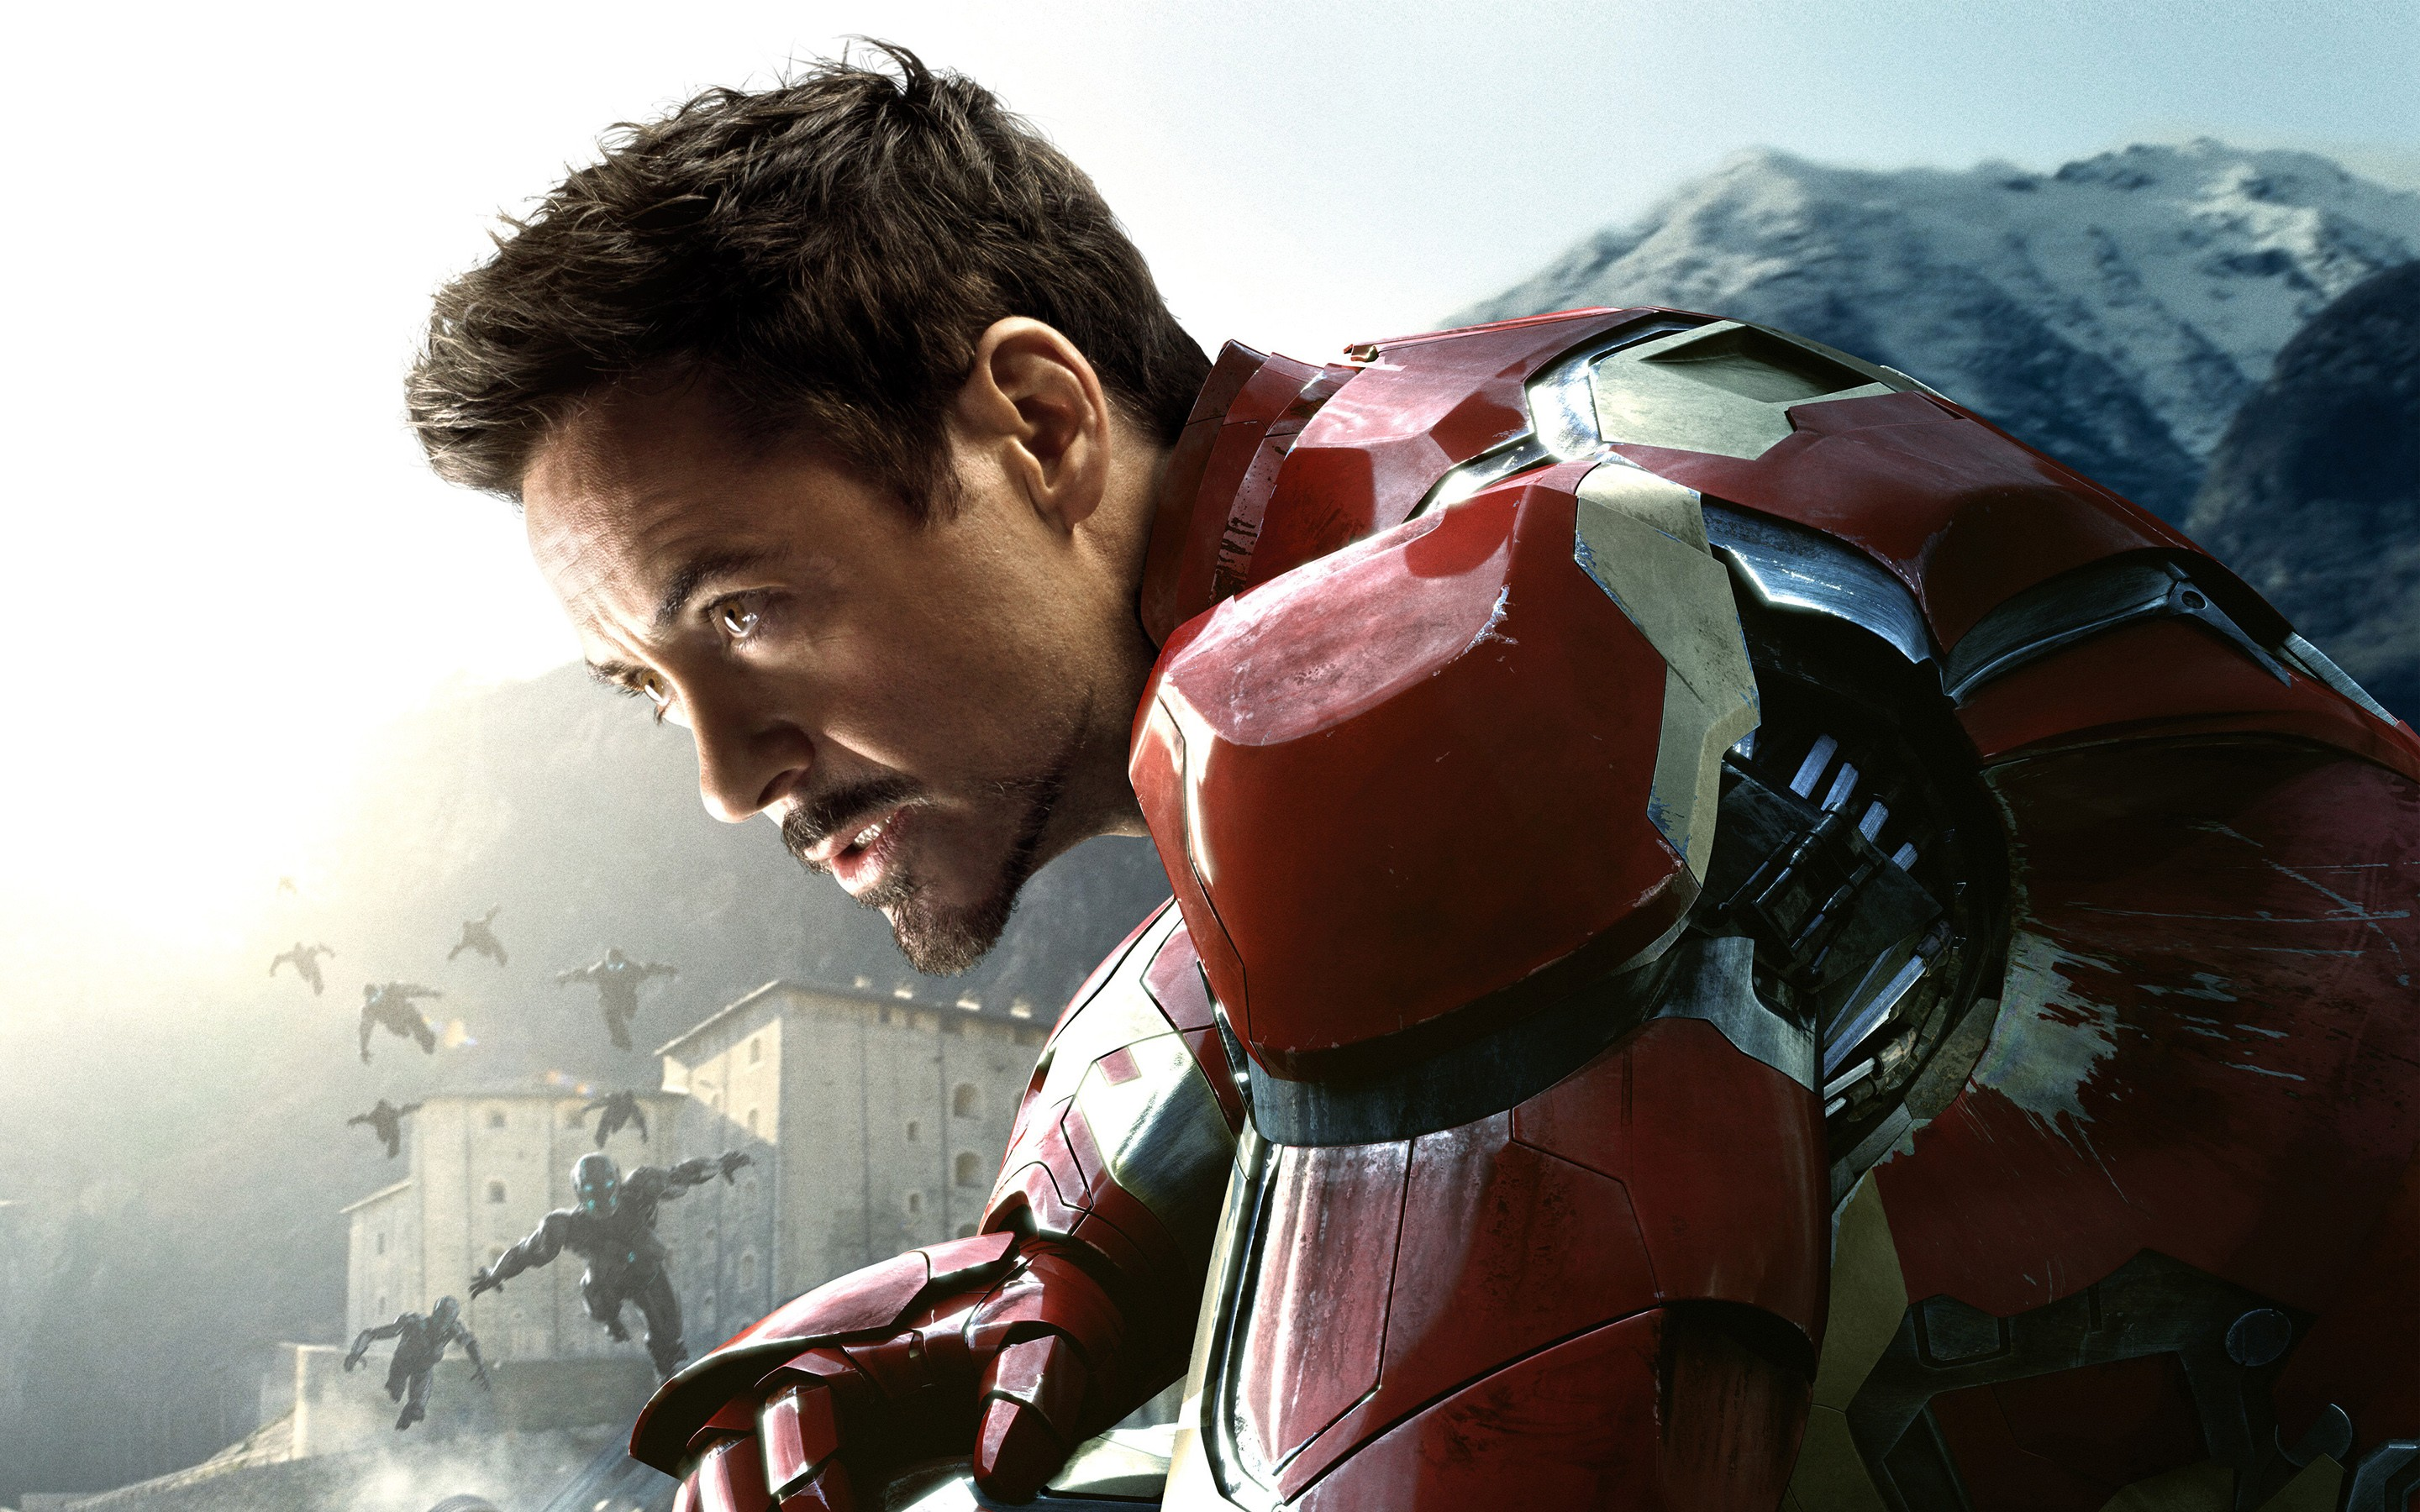 Iron man avengers age of ultron hd movies 4k wallpapers images iron man avengers age of ultron voltagebd Image collections